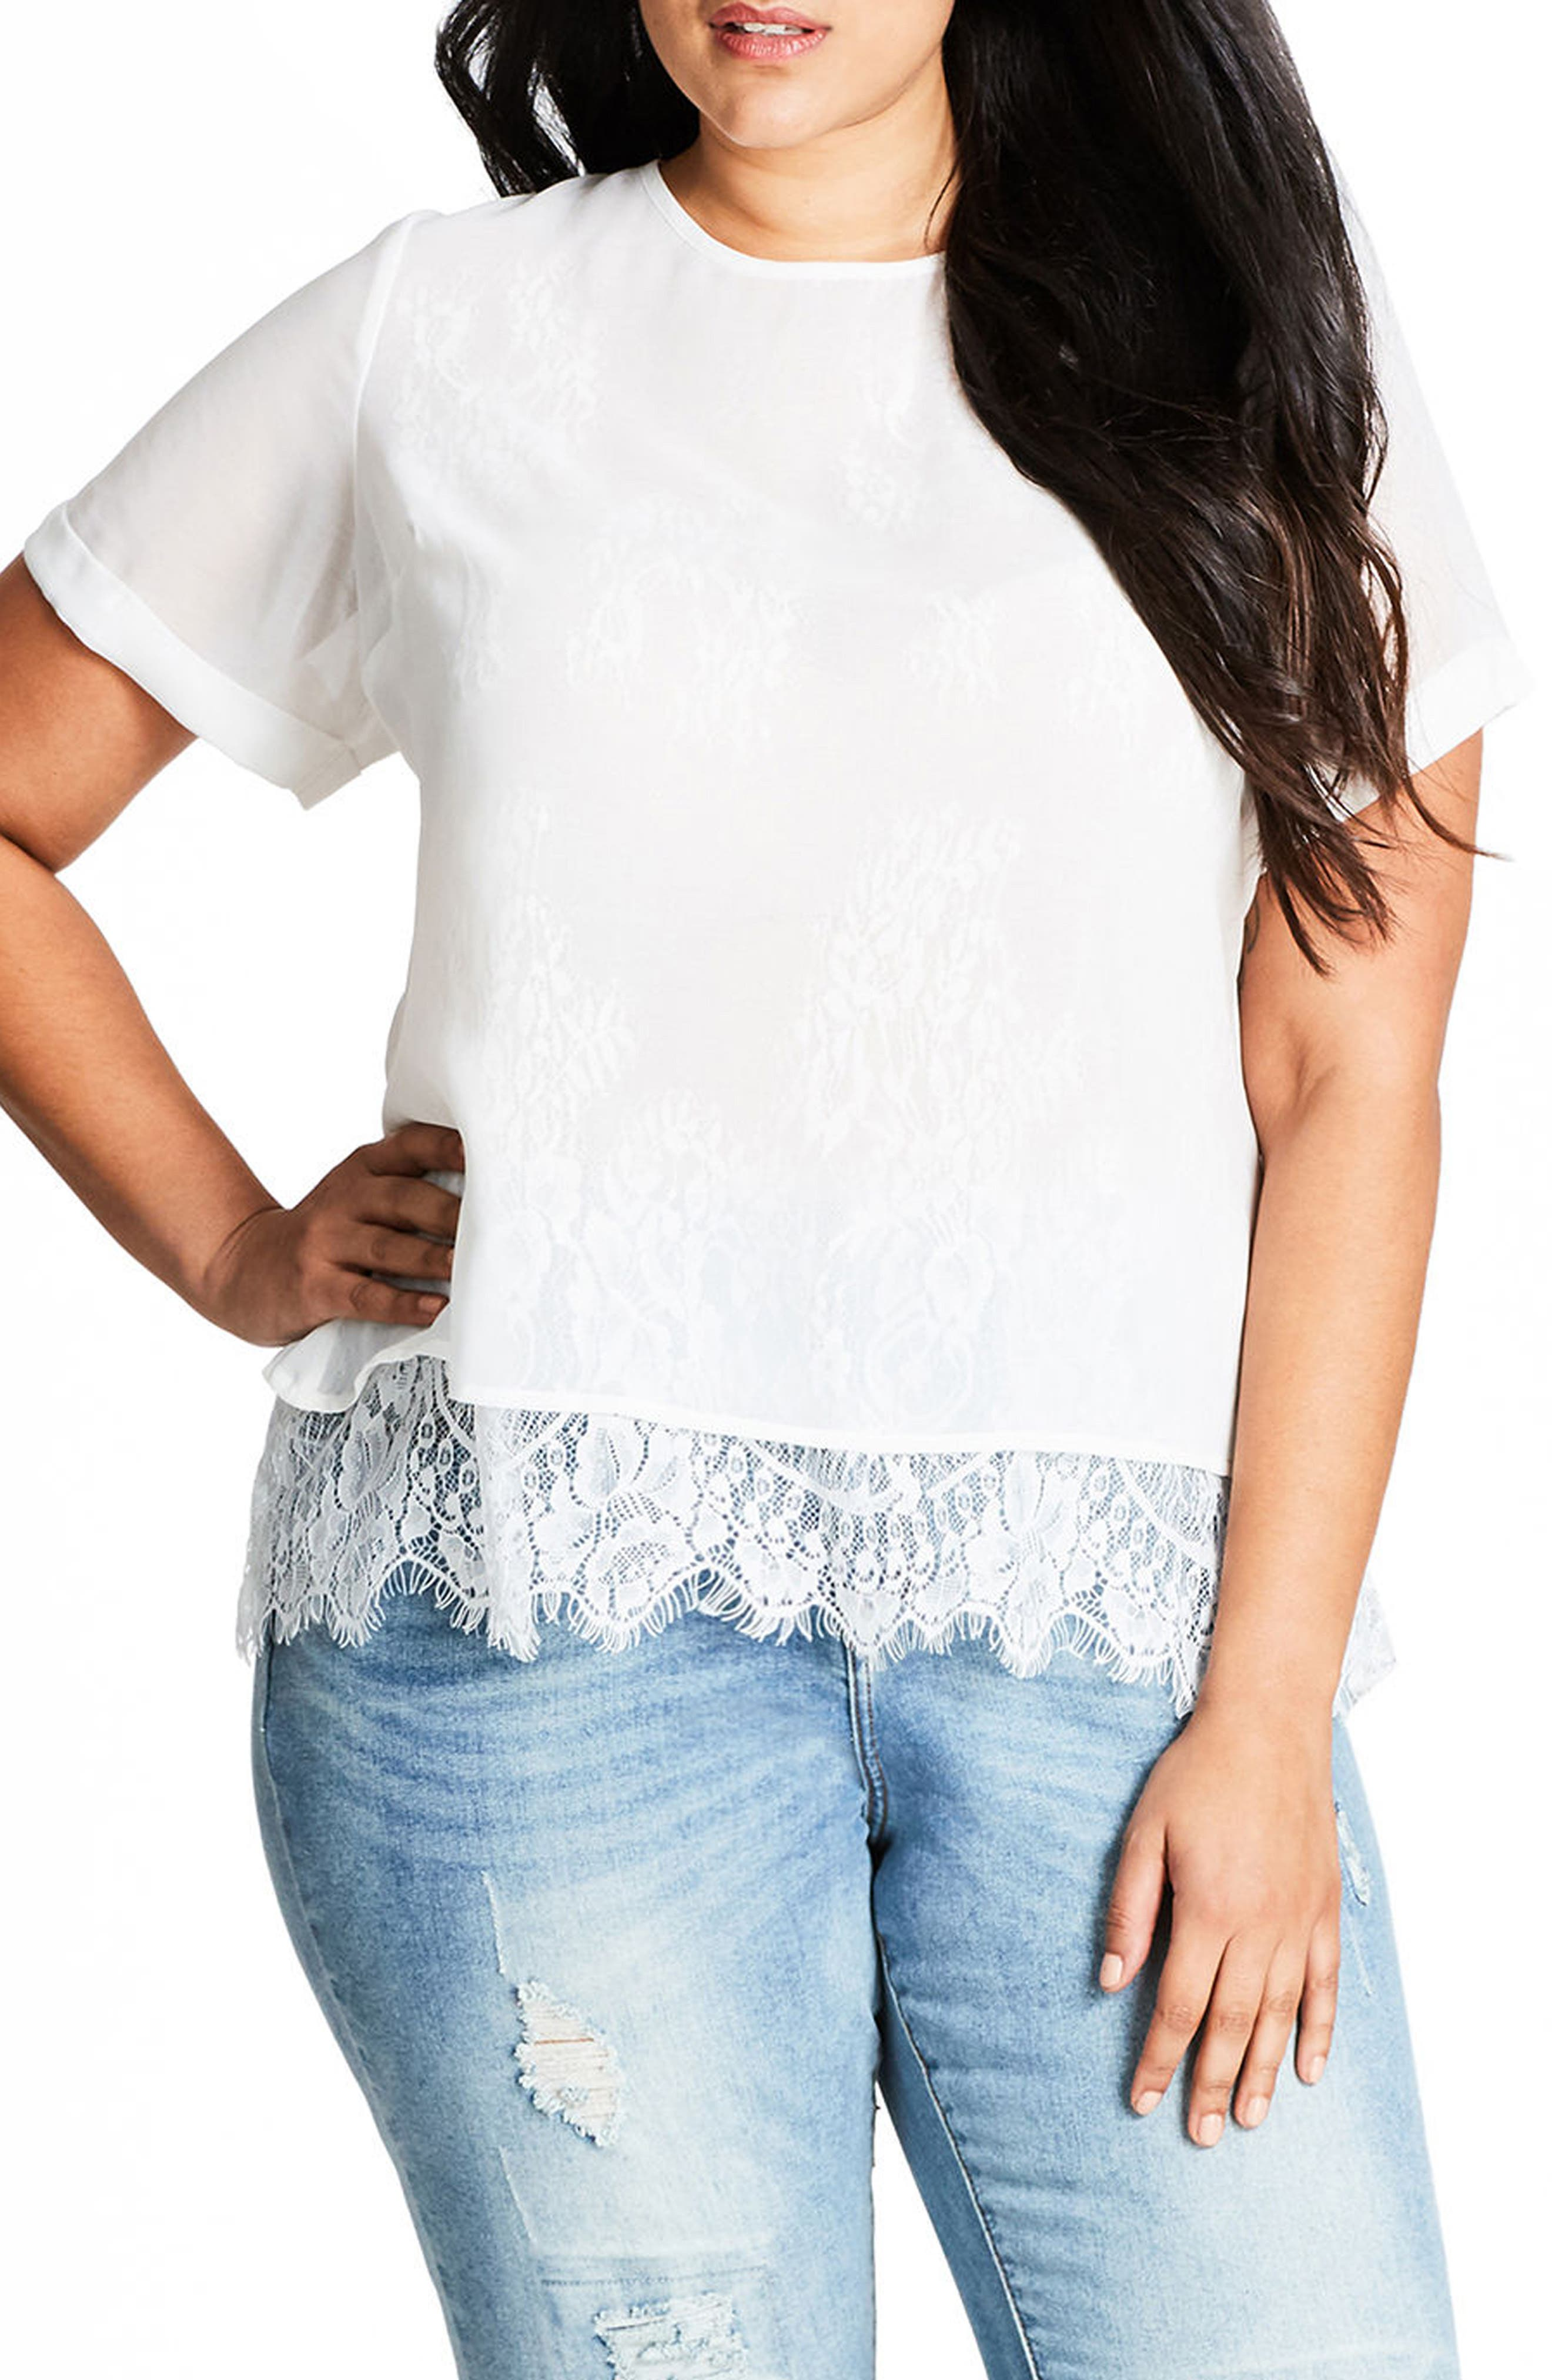 Alternate Image 1 Selected - City Chic Lace Scallop Top (Plus Size)